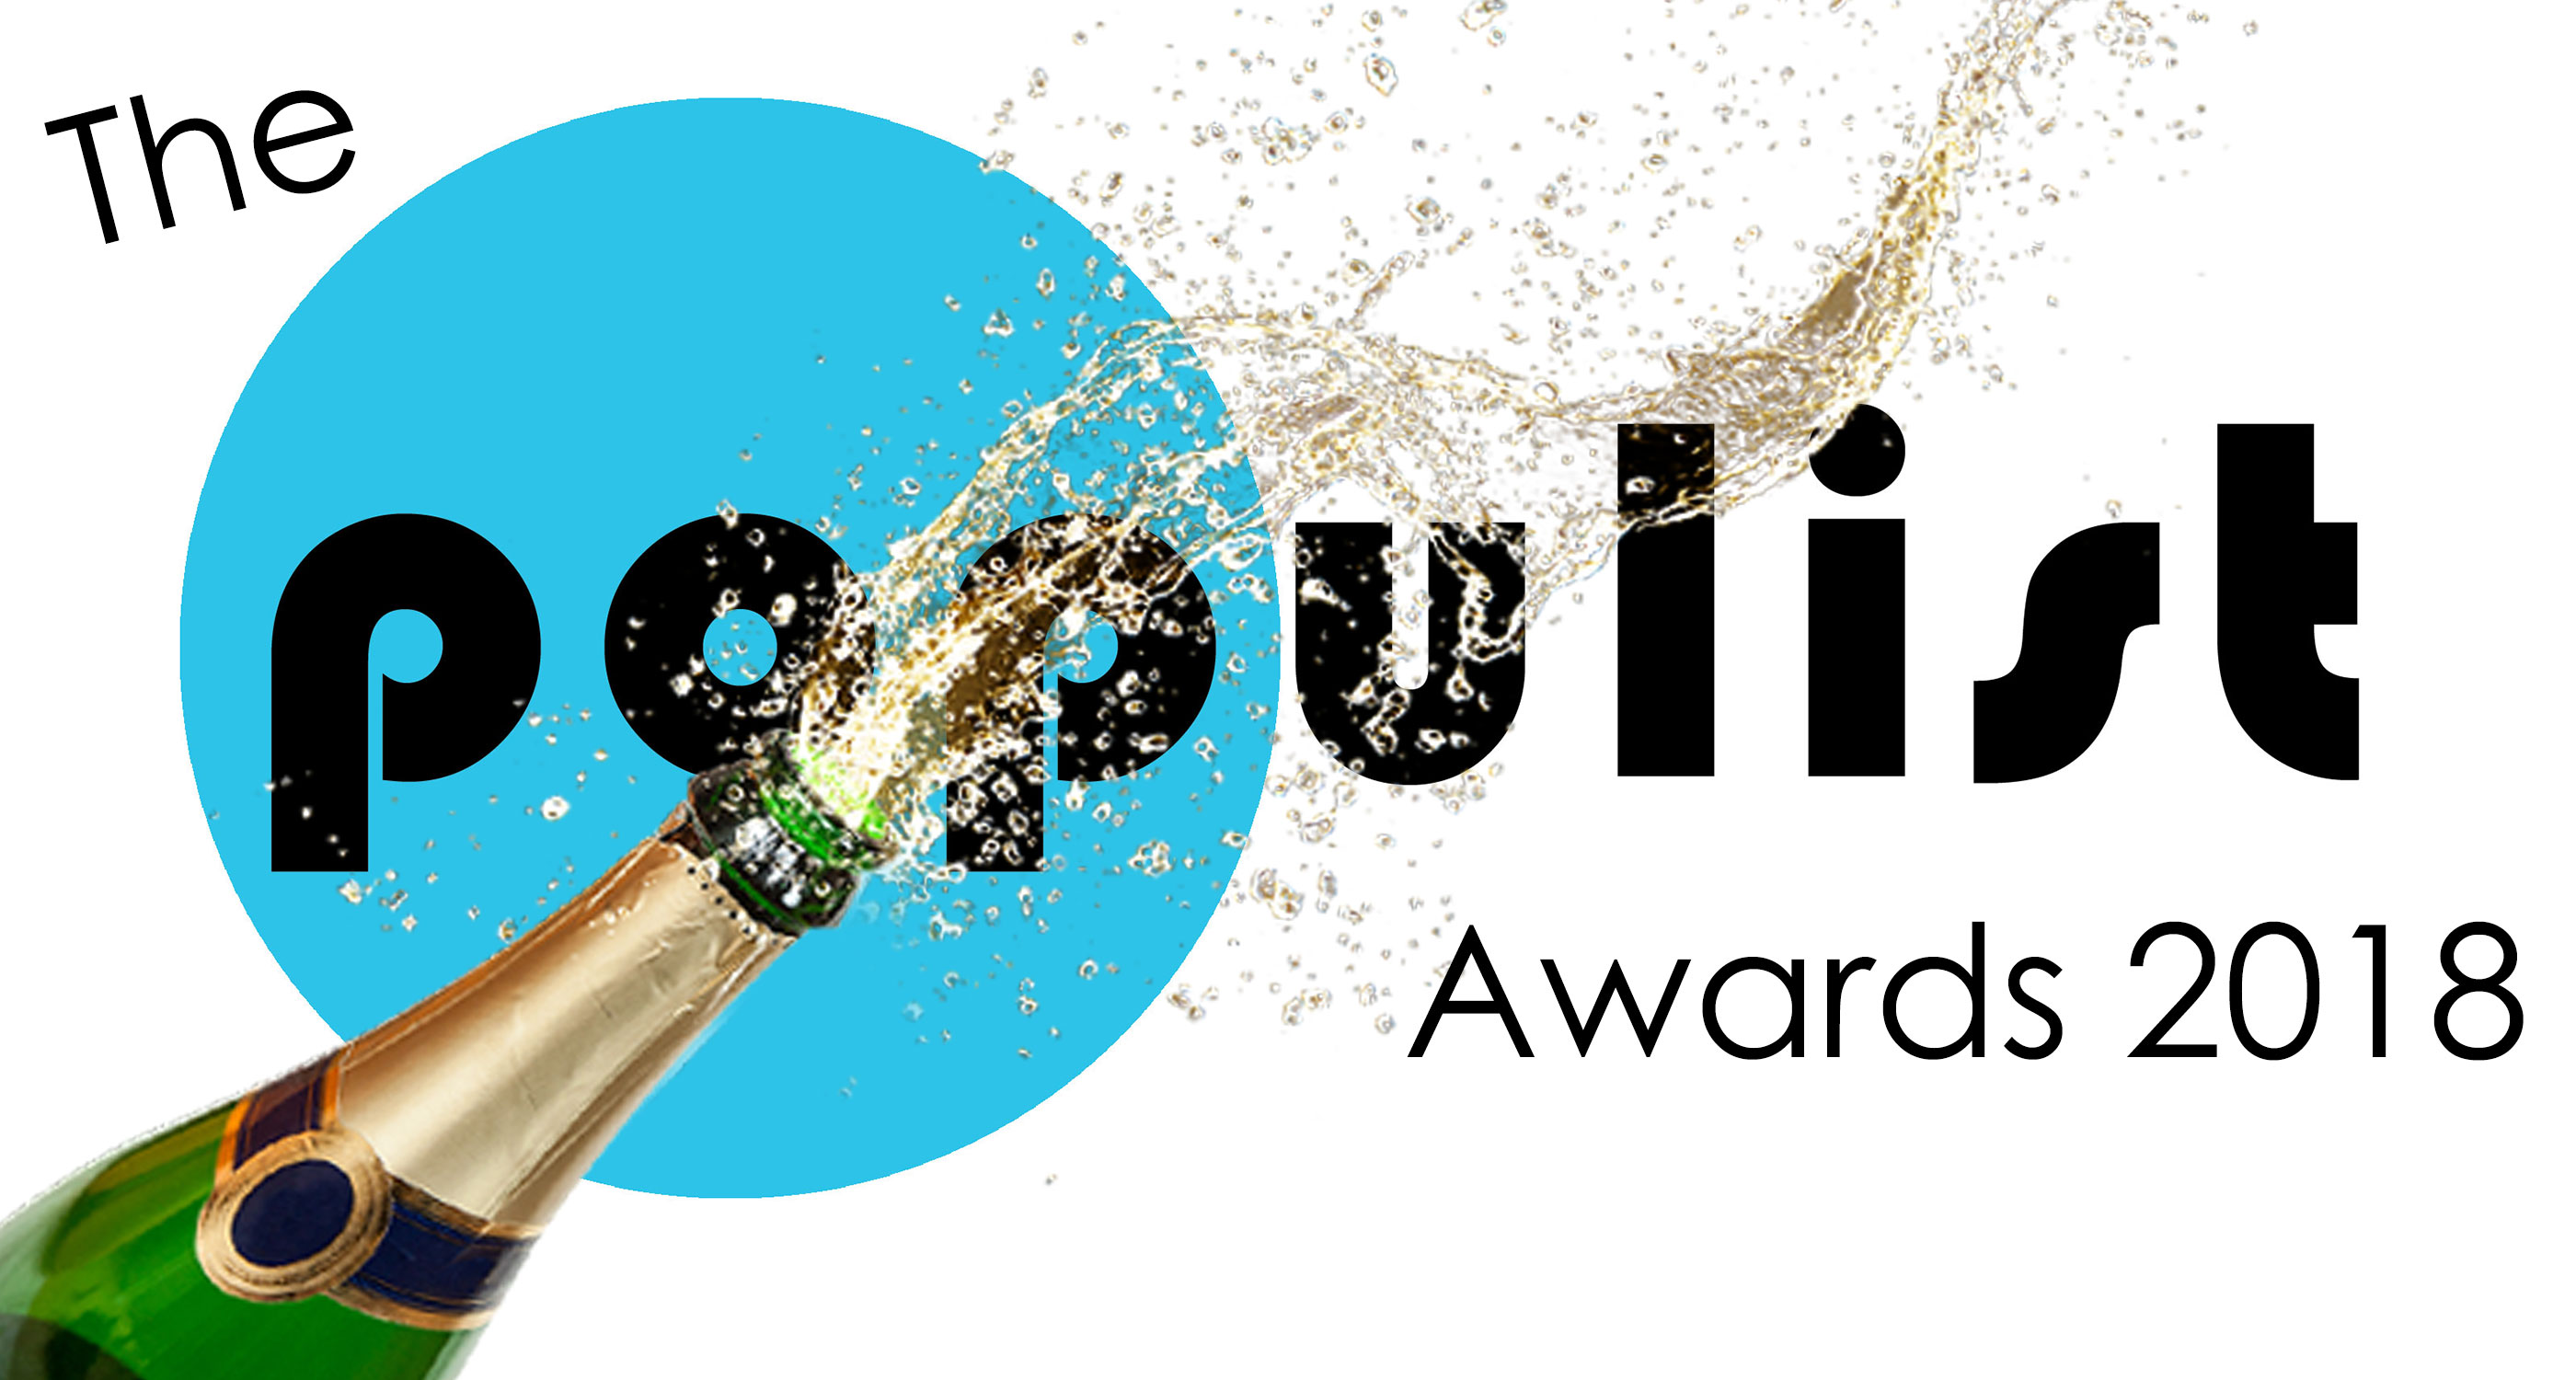 populist awards 2018